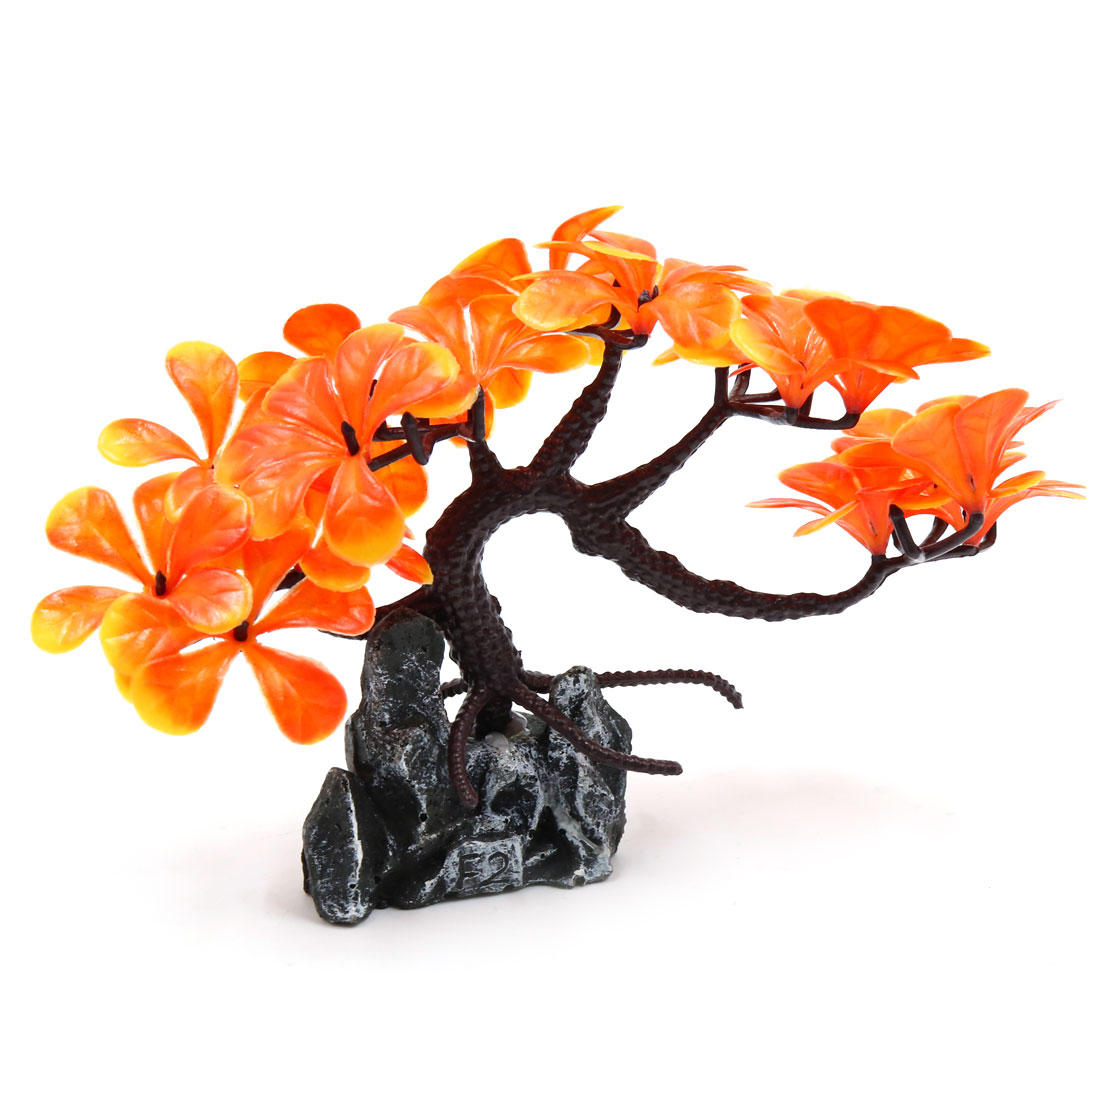 Plastic Tree rium Fish Tank Decorative Plant Landscape Ornament Orange